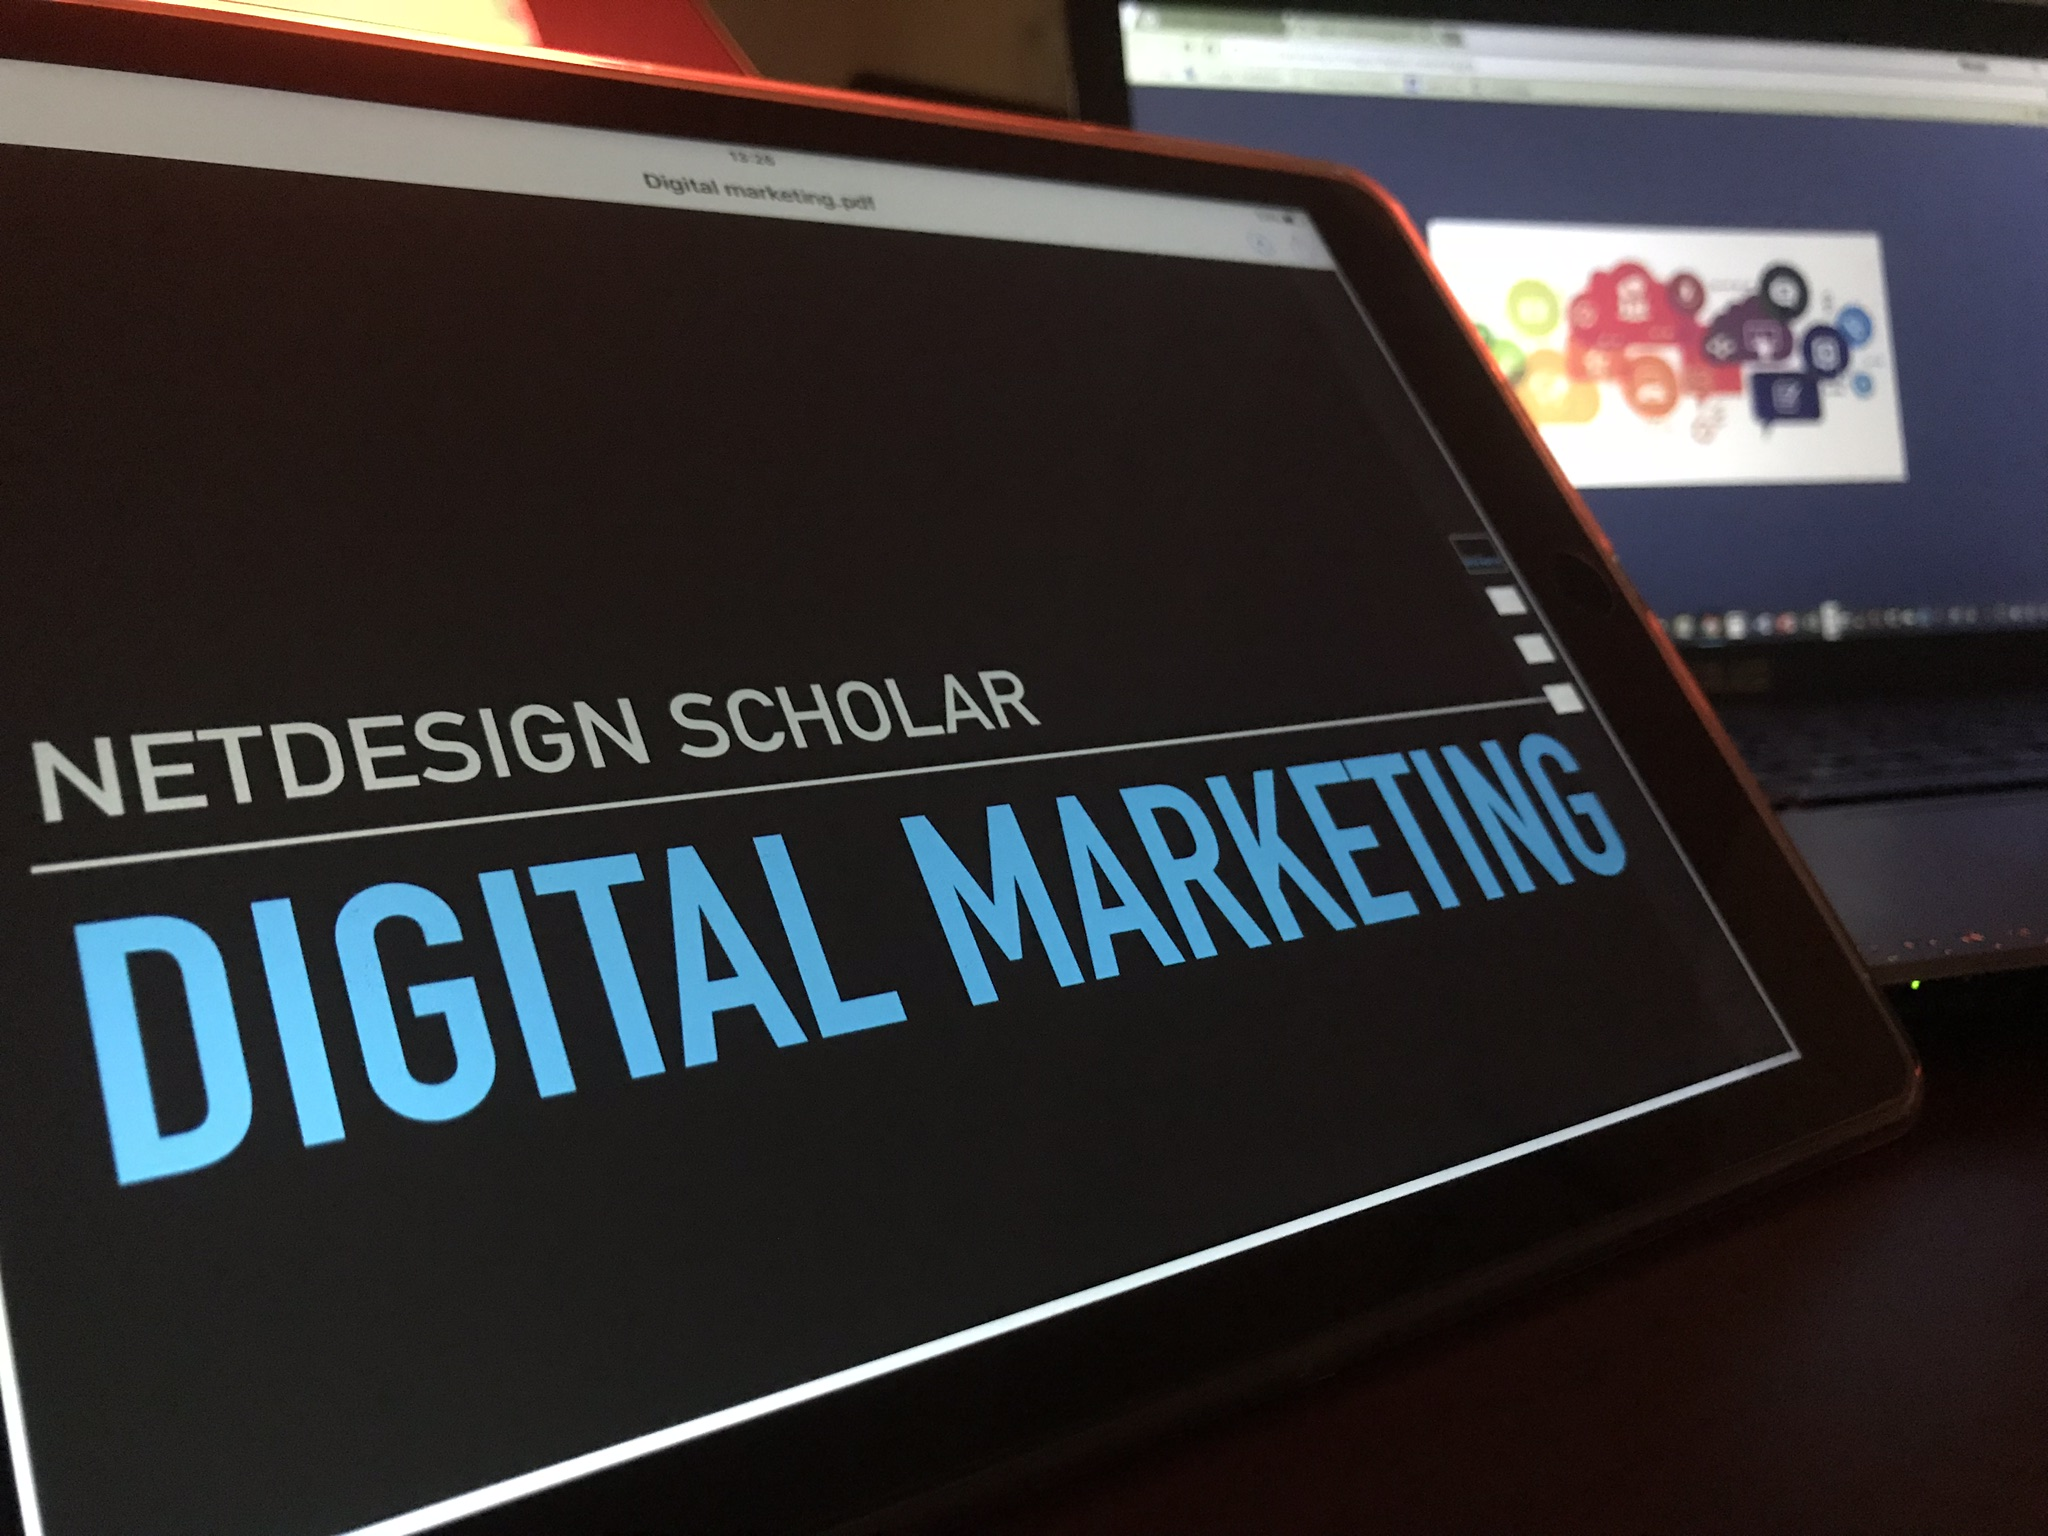 Netdesign Scholar, corso in Digital Marketing